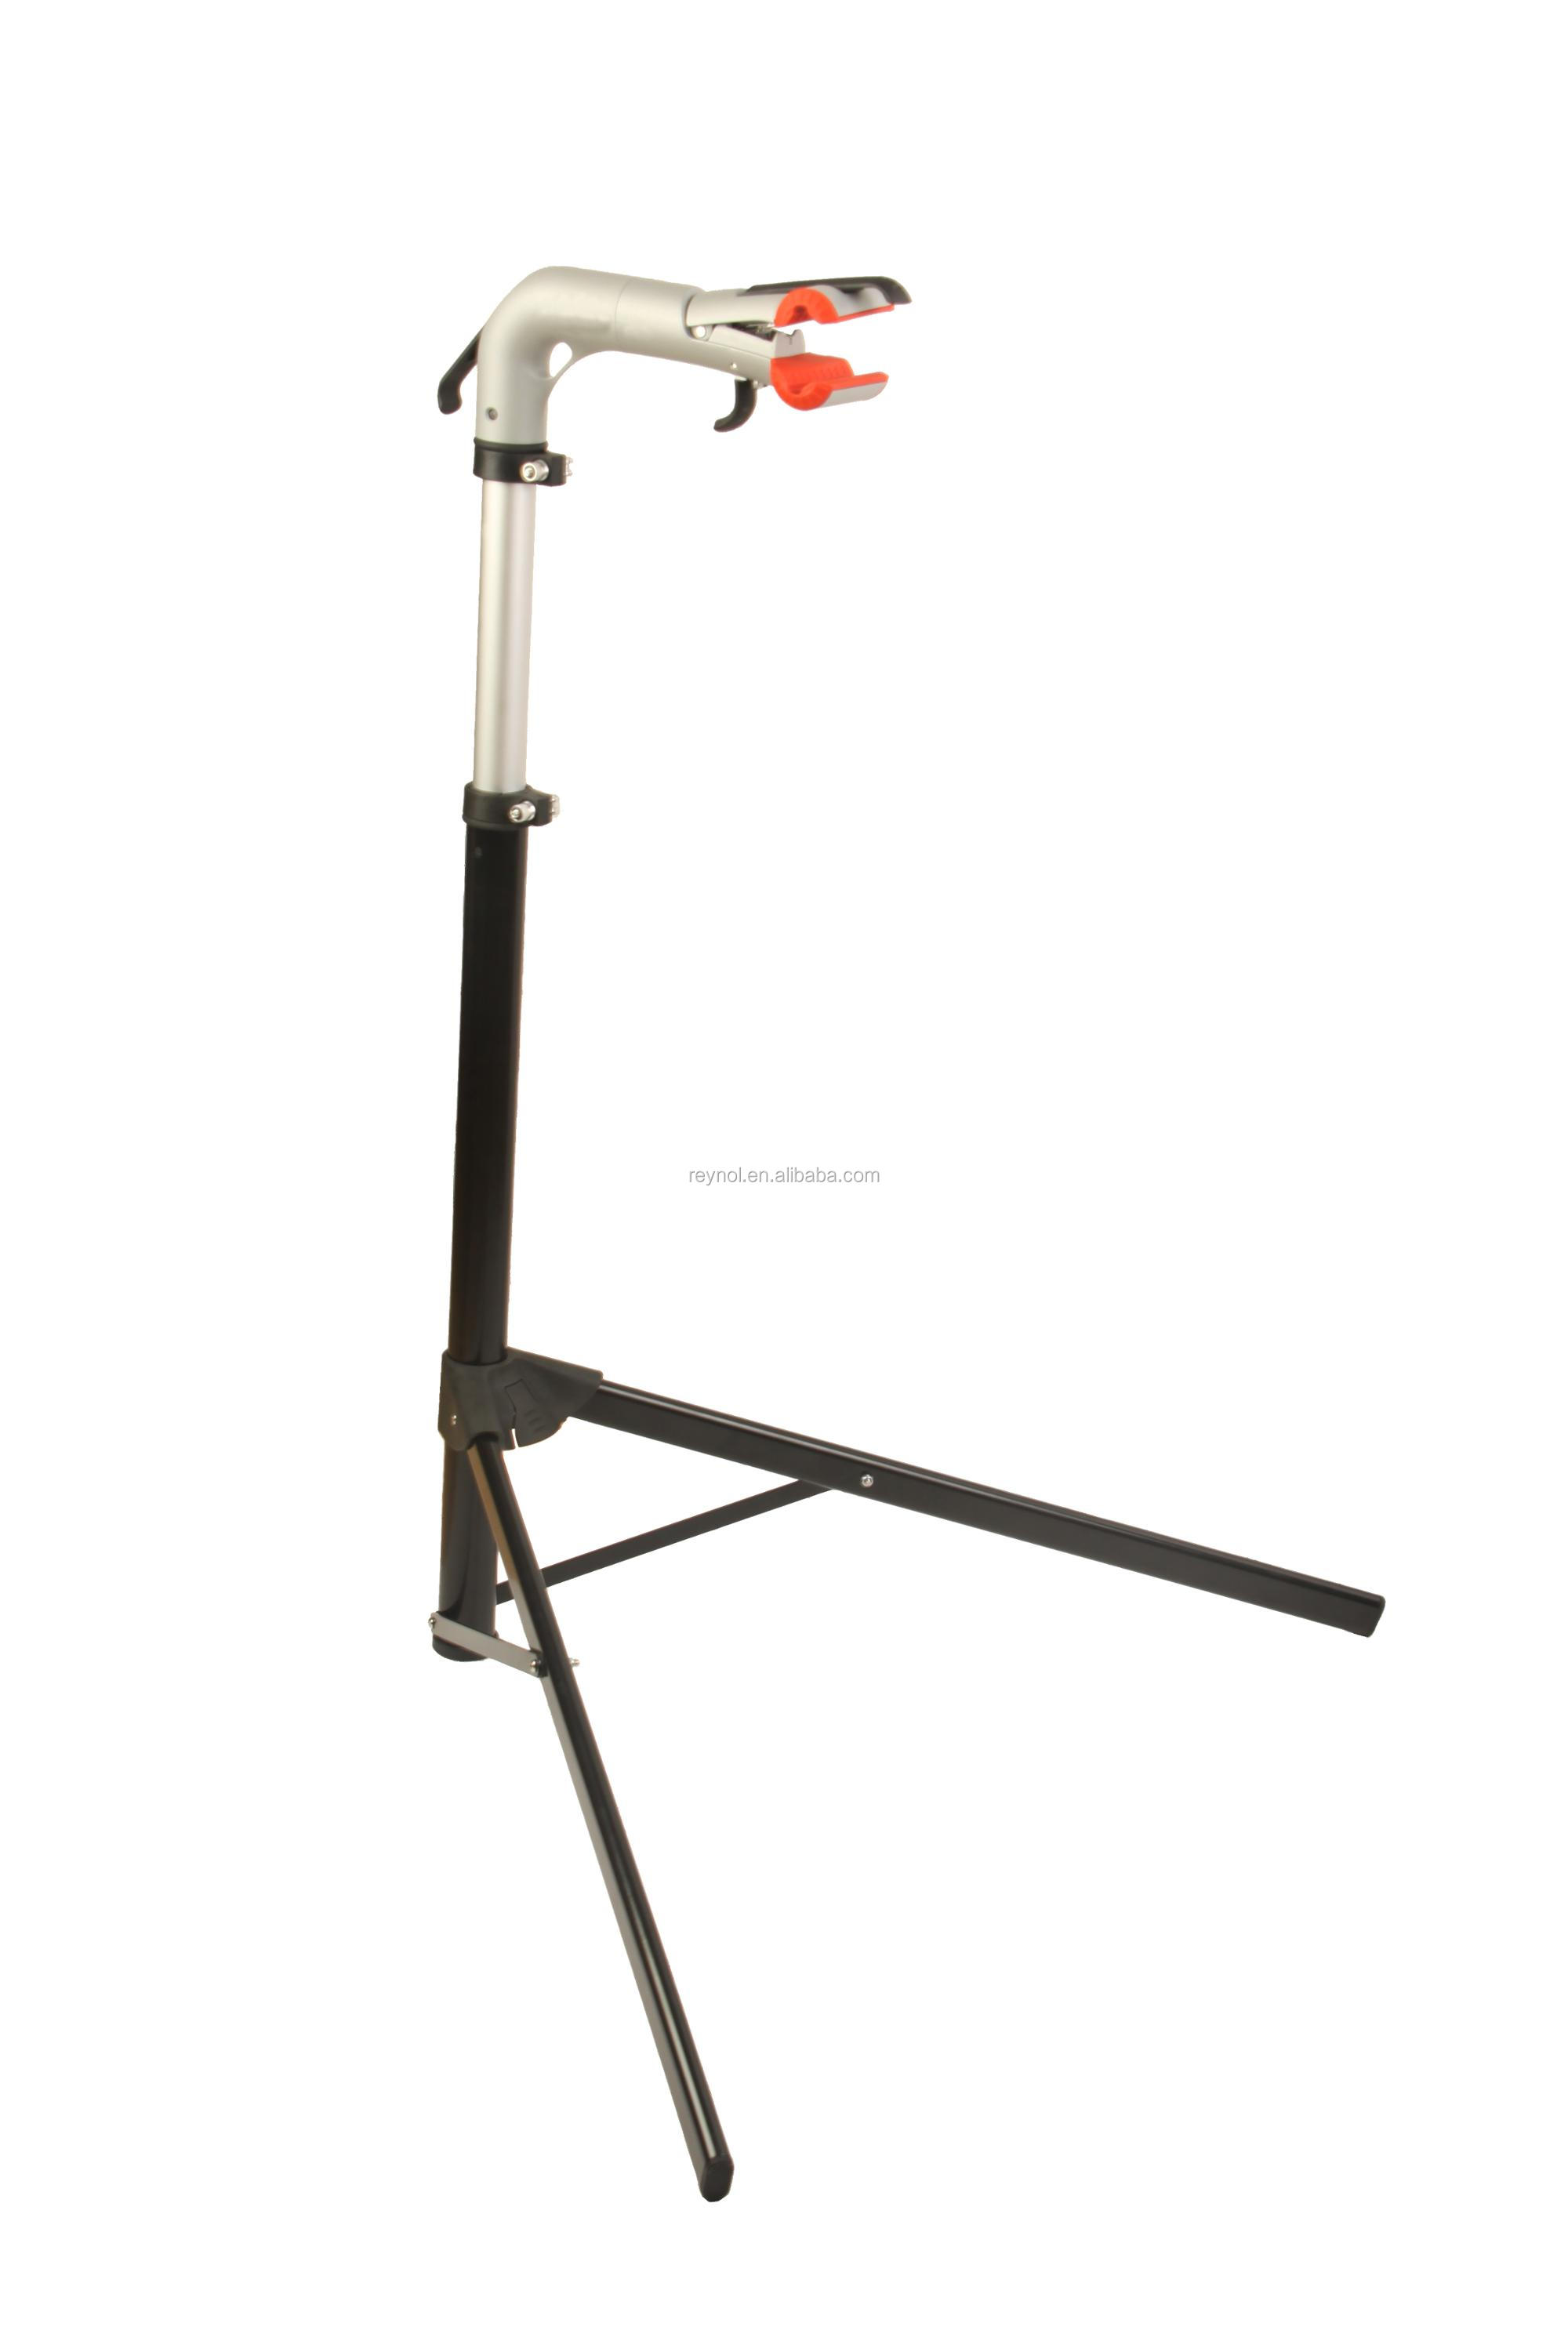 New design Aluminum Bike repair stand/rack with strong Alu. Die casting clamp